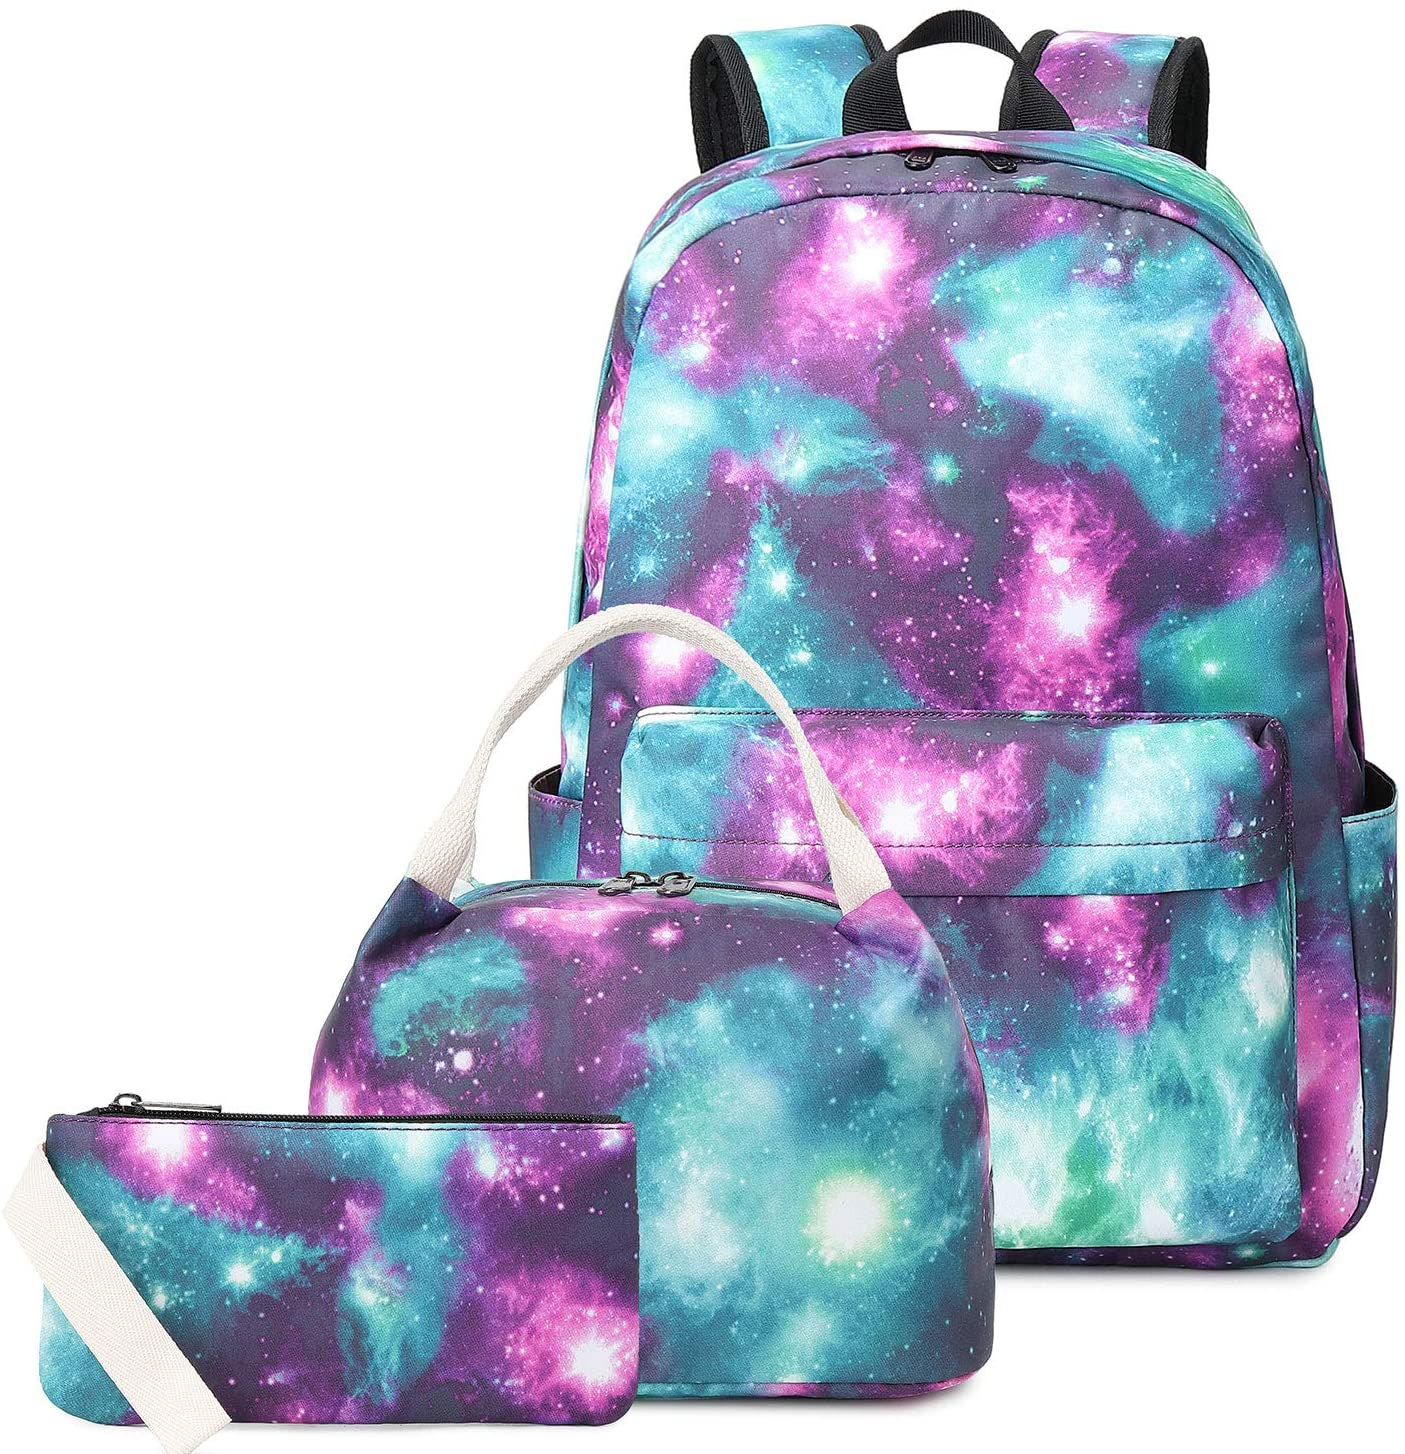 "Pawsky Waterproof Galaxy Canvas Backpack Set for College Girls Women Fits 14"" Laptop Backpack Daypack School Bookbag with Lunch Box and Pencil Case"